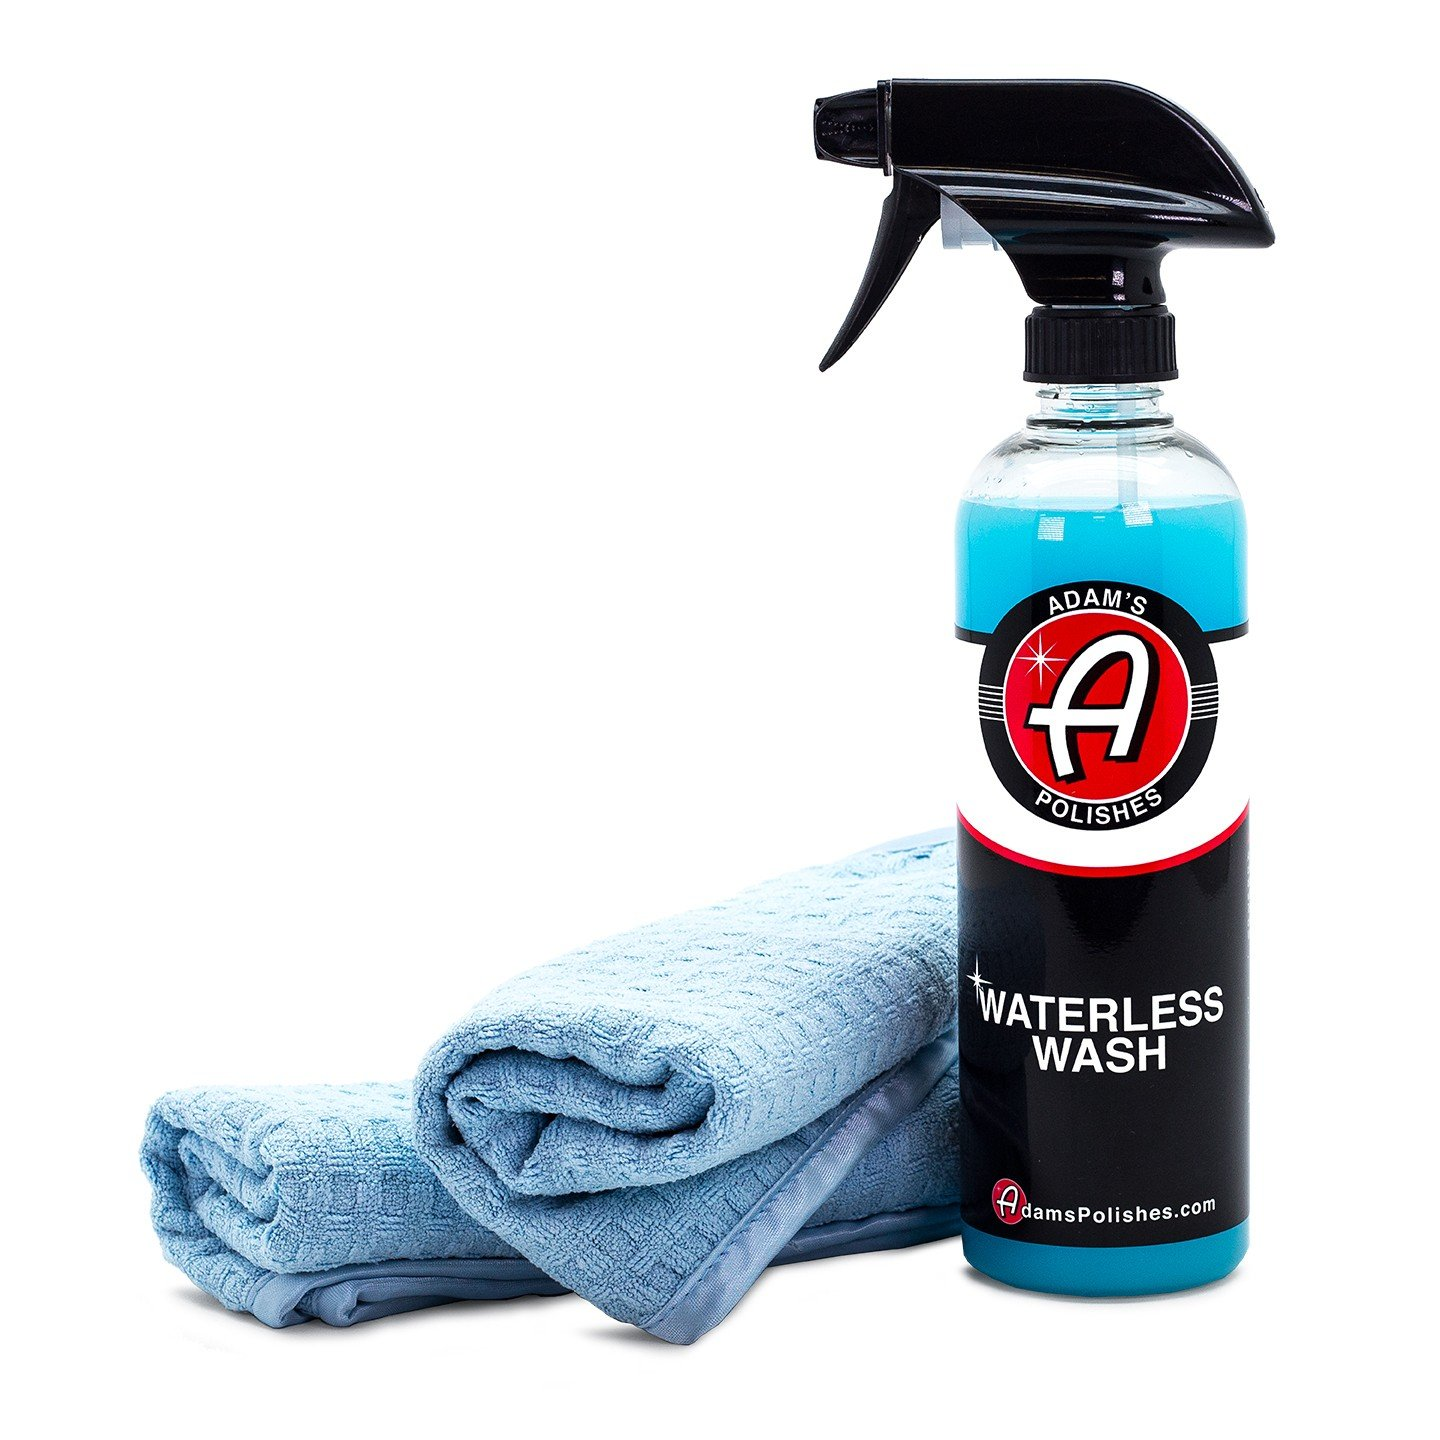 Adam's Waterless Car Wash - Made with Advanced Emulsifiers and Special Lubricants - Eco-Friendly Waterless Car Washing with No Hoses, No Water, No Messes (Combo)